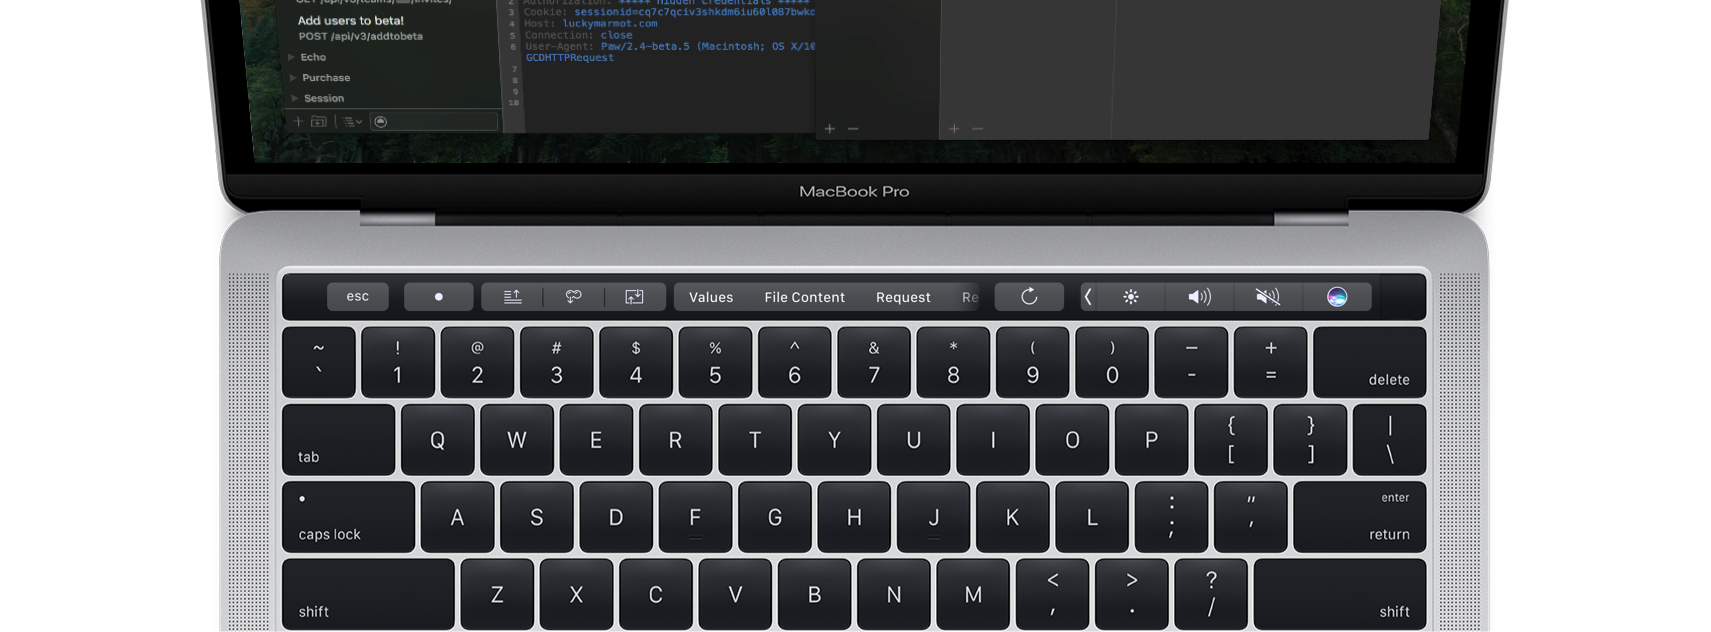 Paw 3.0.14 adds support for Touch Bar on the new MacBook Pro and request dependencies